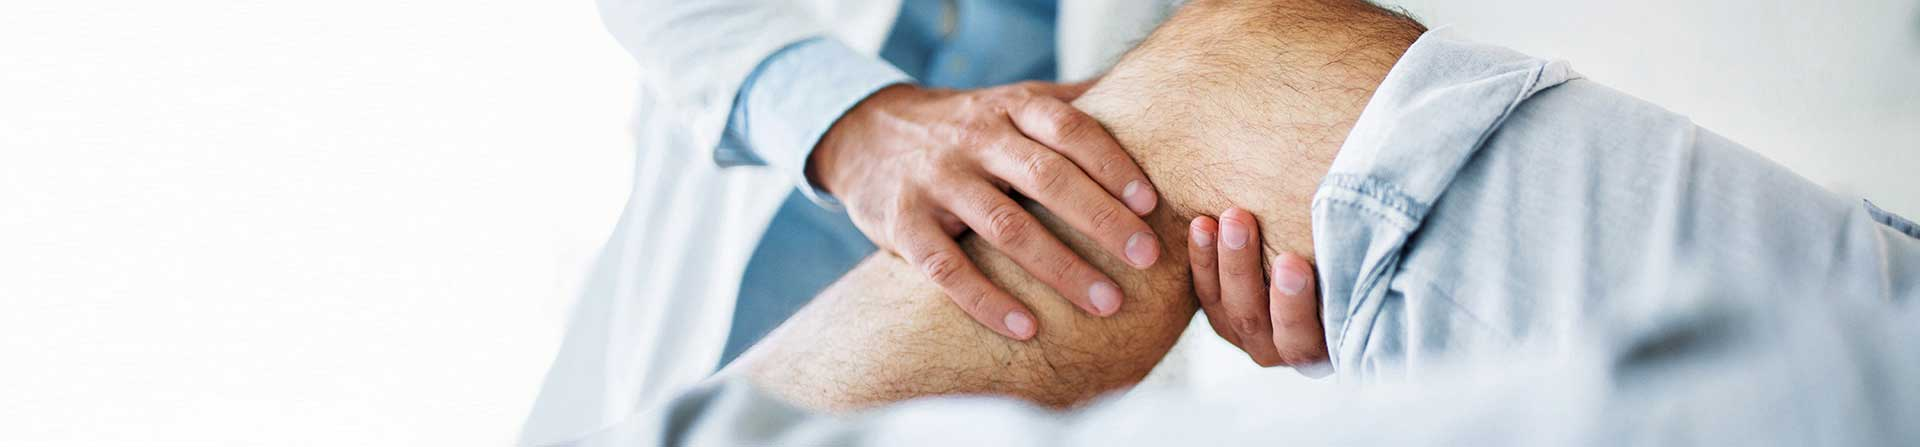 Doctor giving knee exam